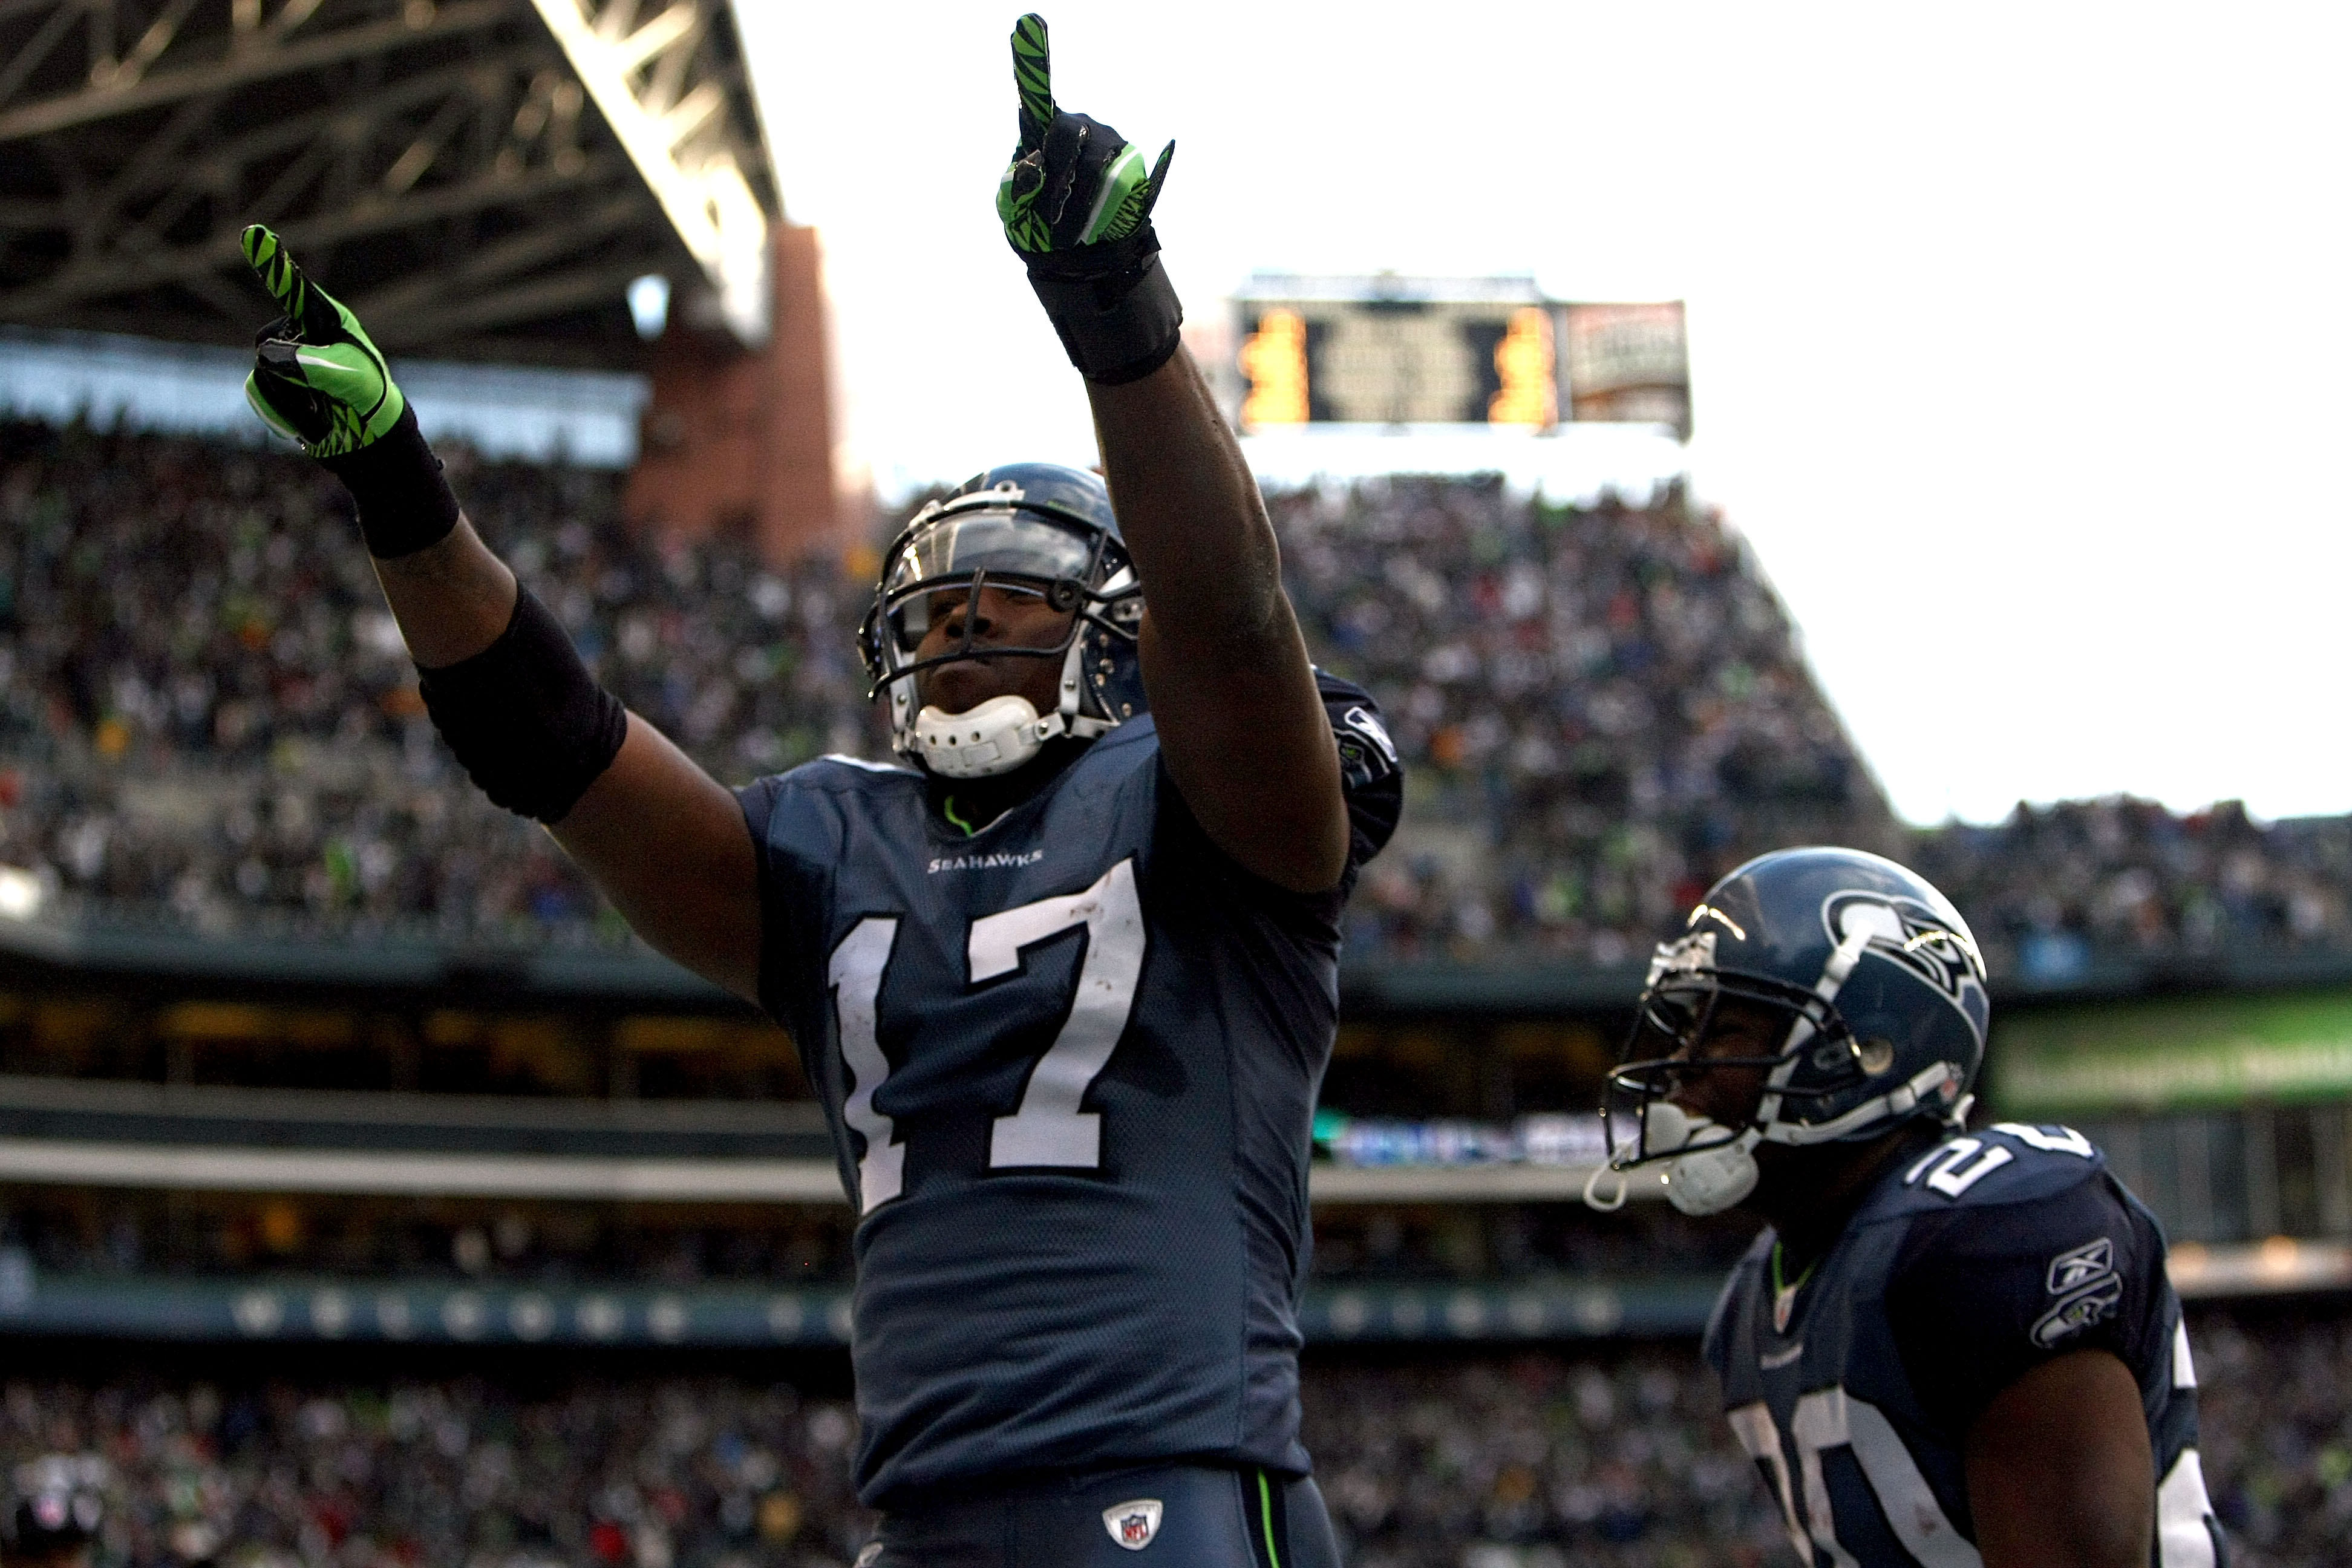 SEATTLE, WA - JANUARY 08:  Wide receiver Mike Williams #17 of the Seattle Seahawks reacts after catching a 38-yard third quarter touchdown pass against the New Orleans Saints during the 2011 NFC wild-card playoff game at Qwest Field on January 8, 2011 in